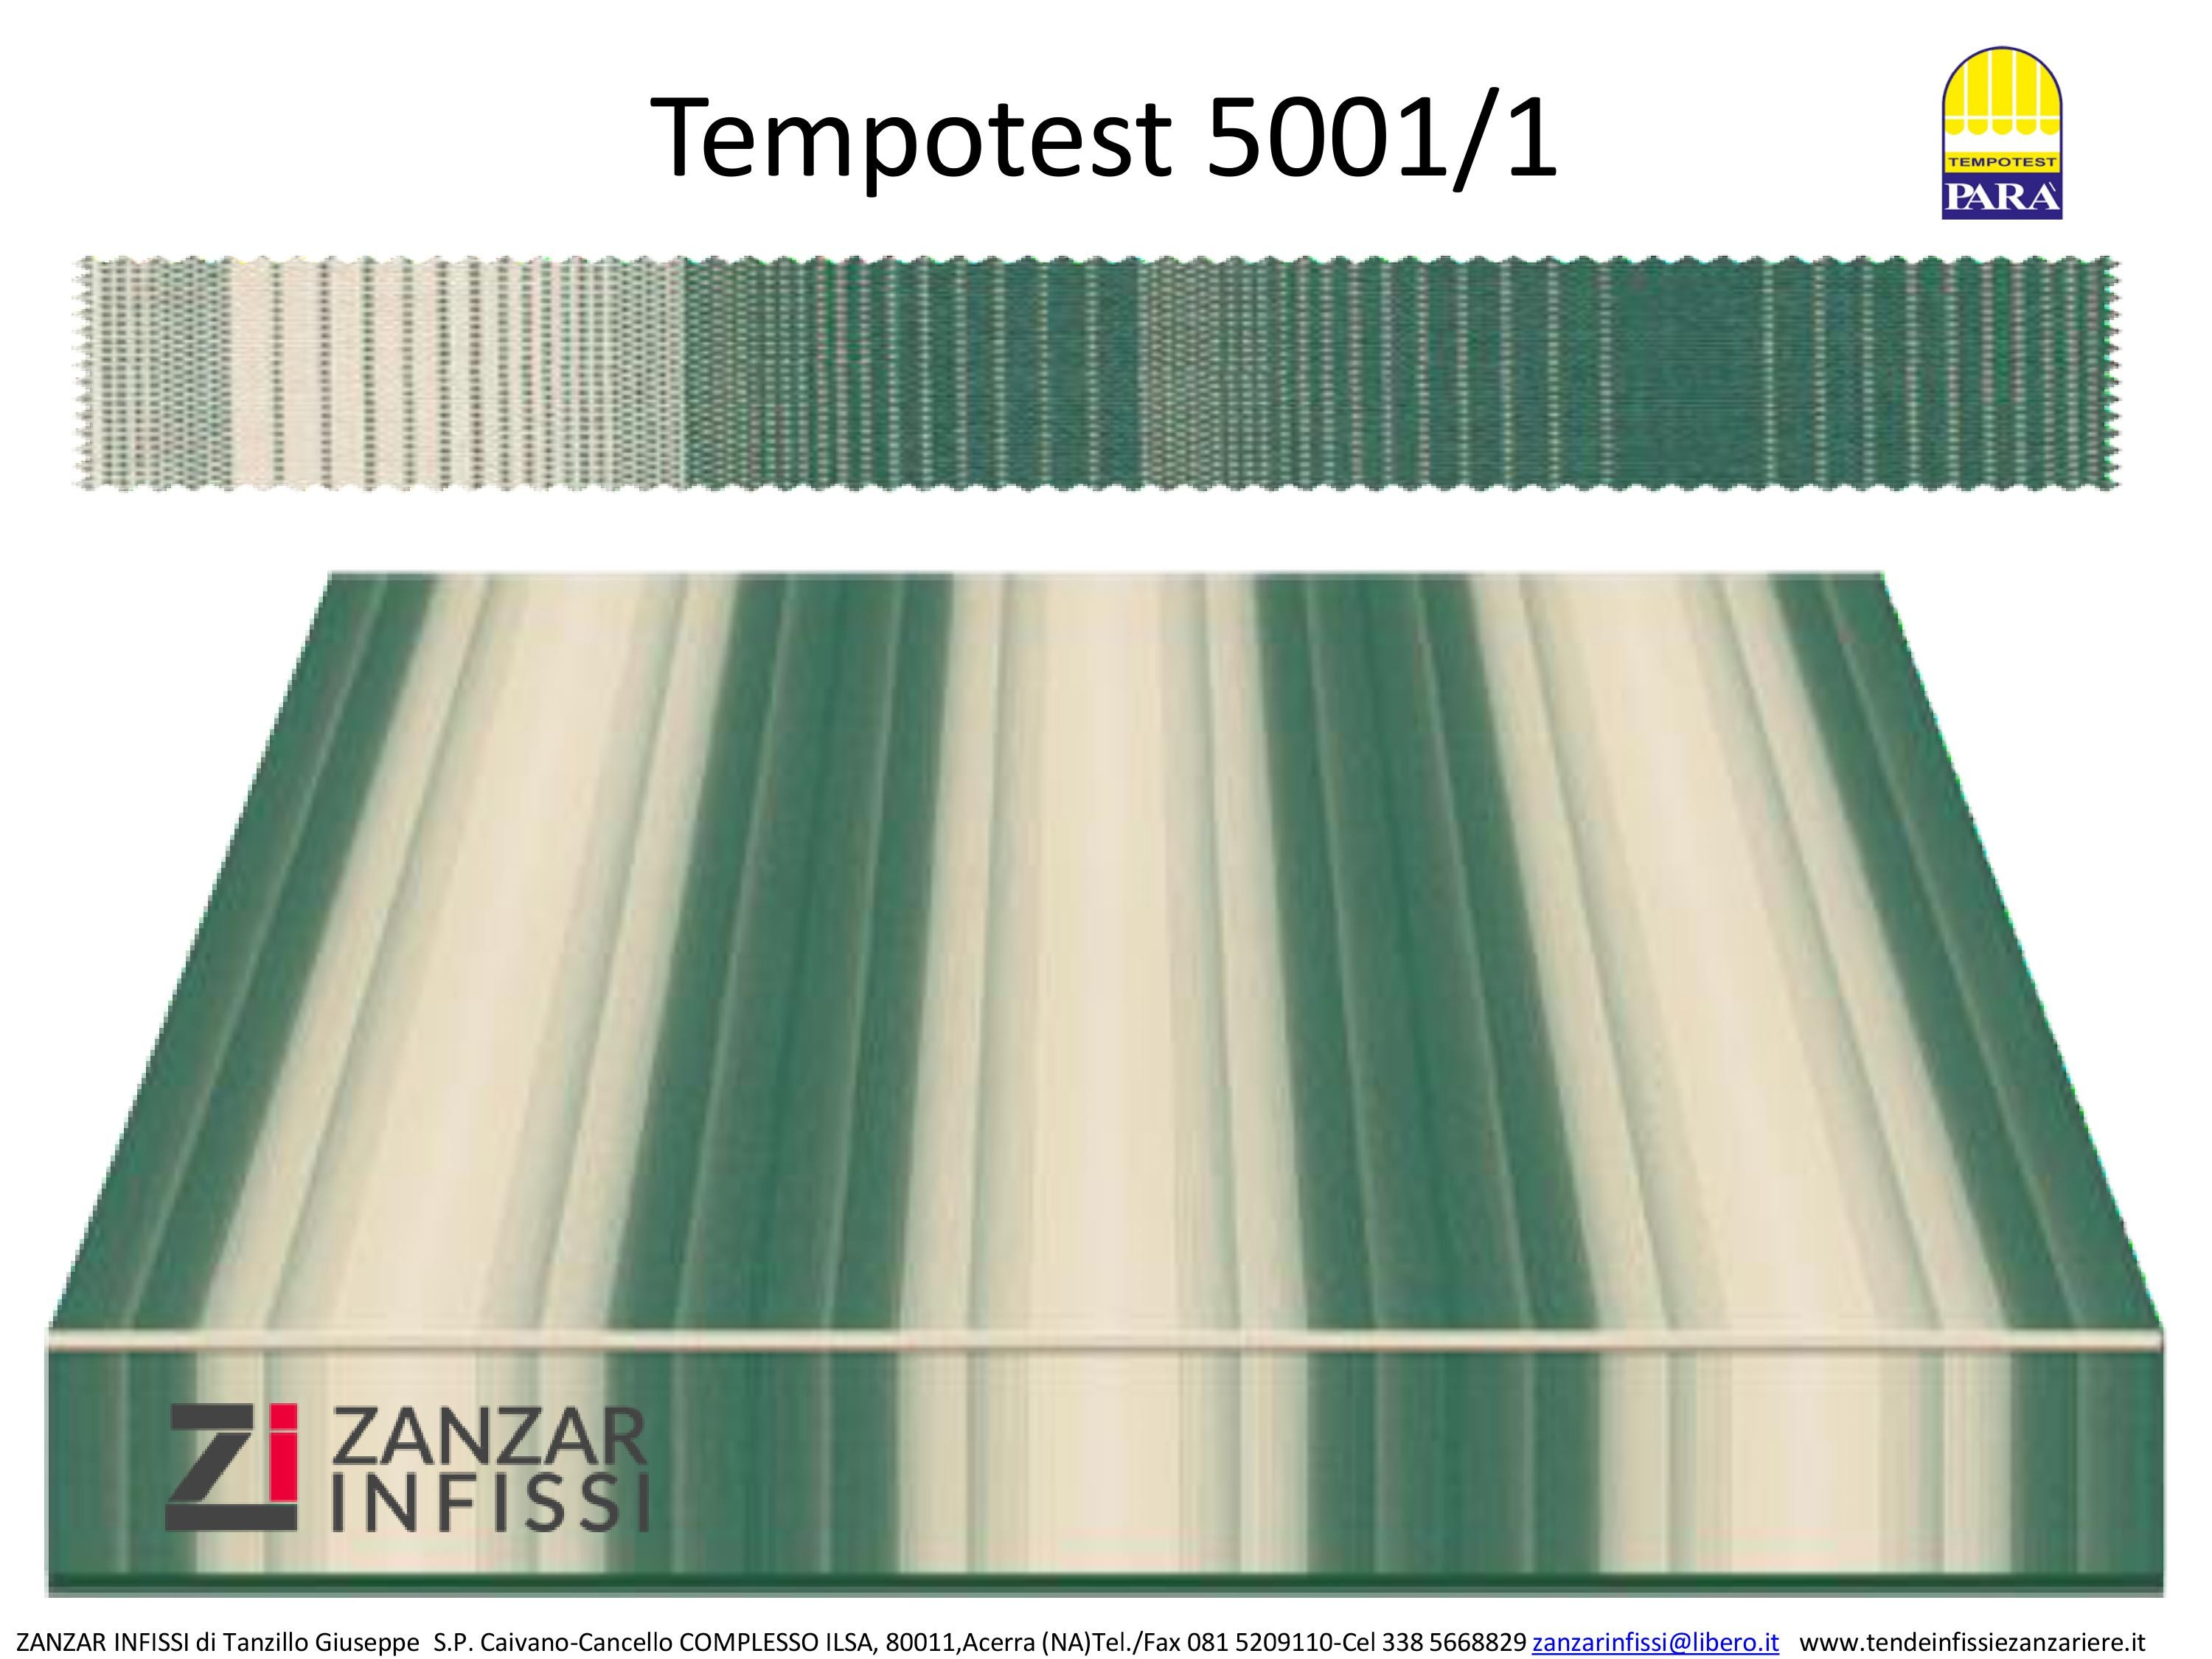 Tempotest 5001/1